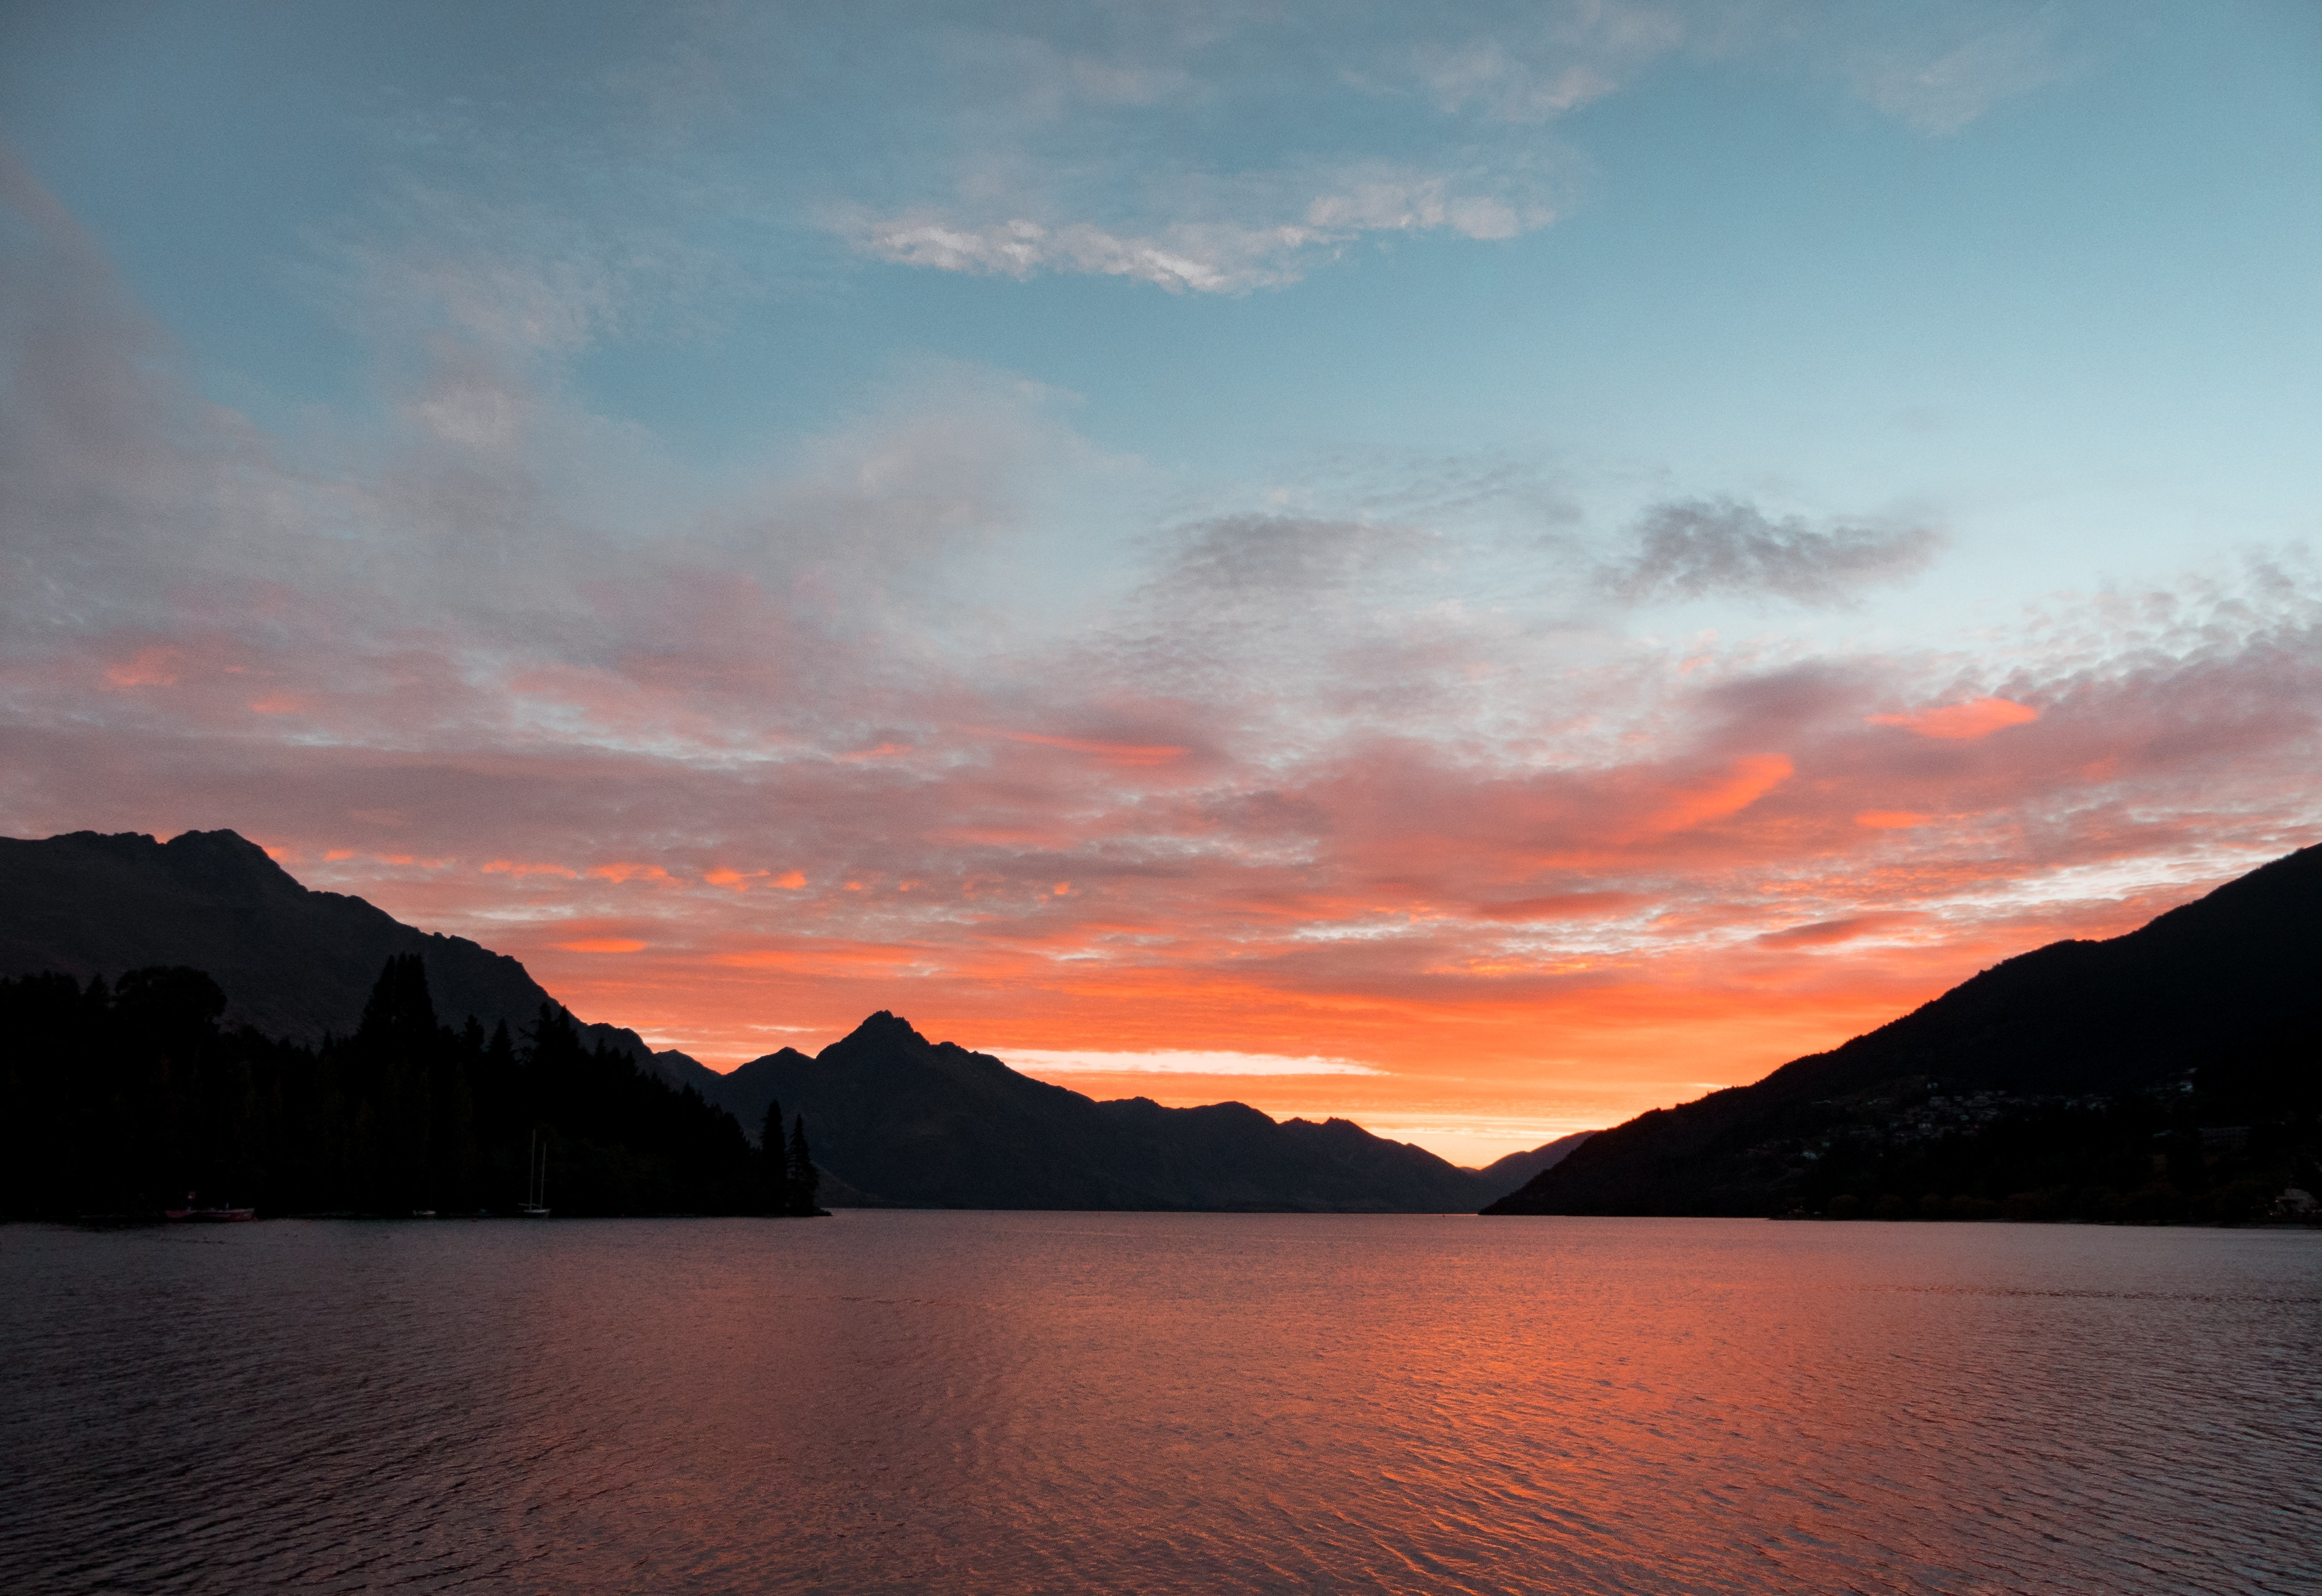 Body of Water Near Silhouette of Mountain Under White Clouds during Sunset, Afterglow, Scenic, Orange, Orange sky, HQ Photo